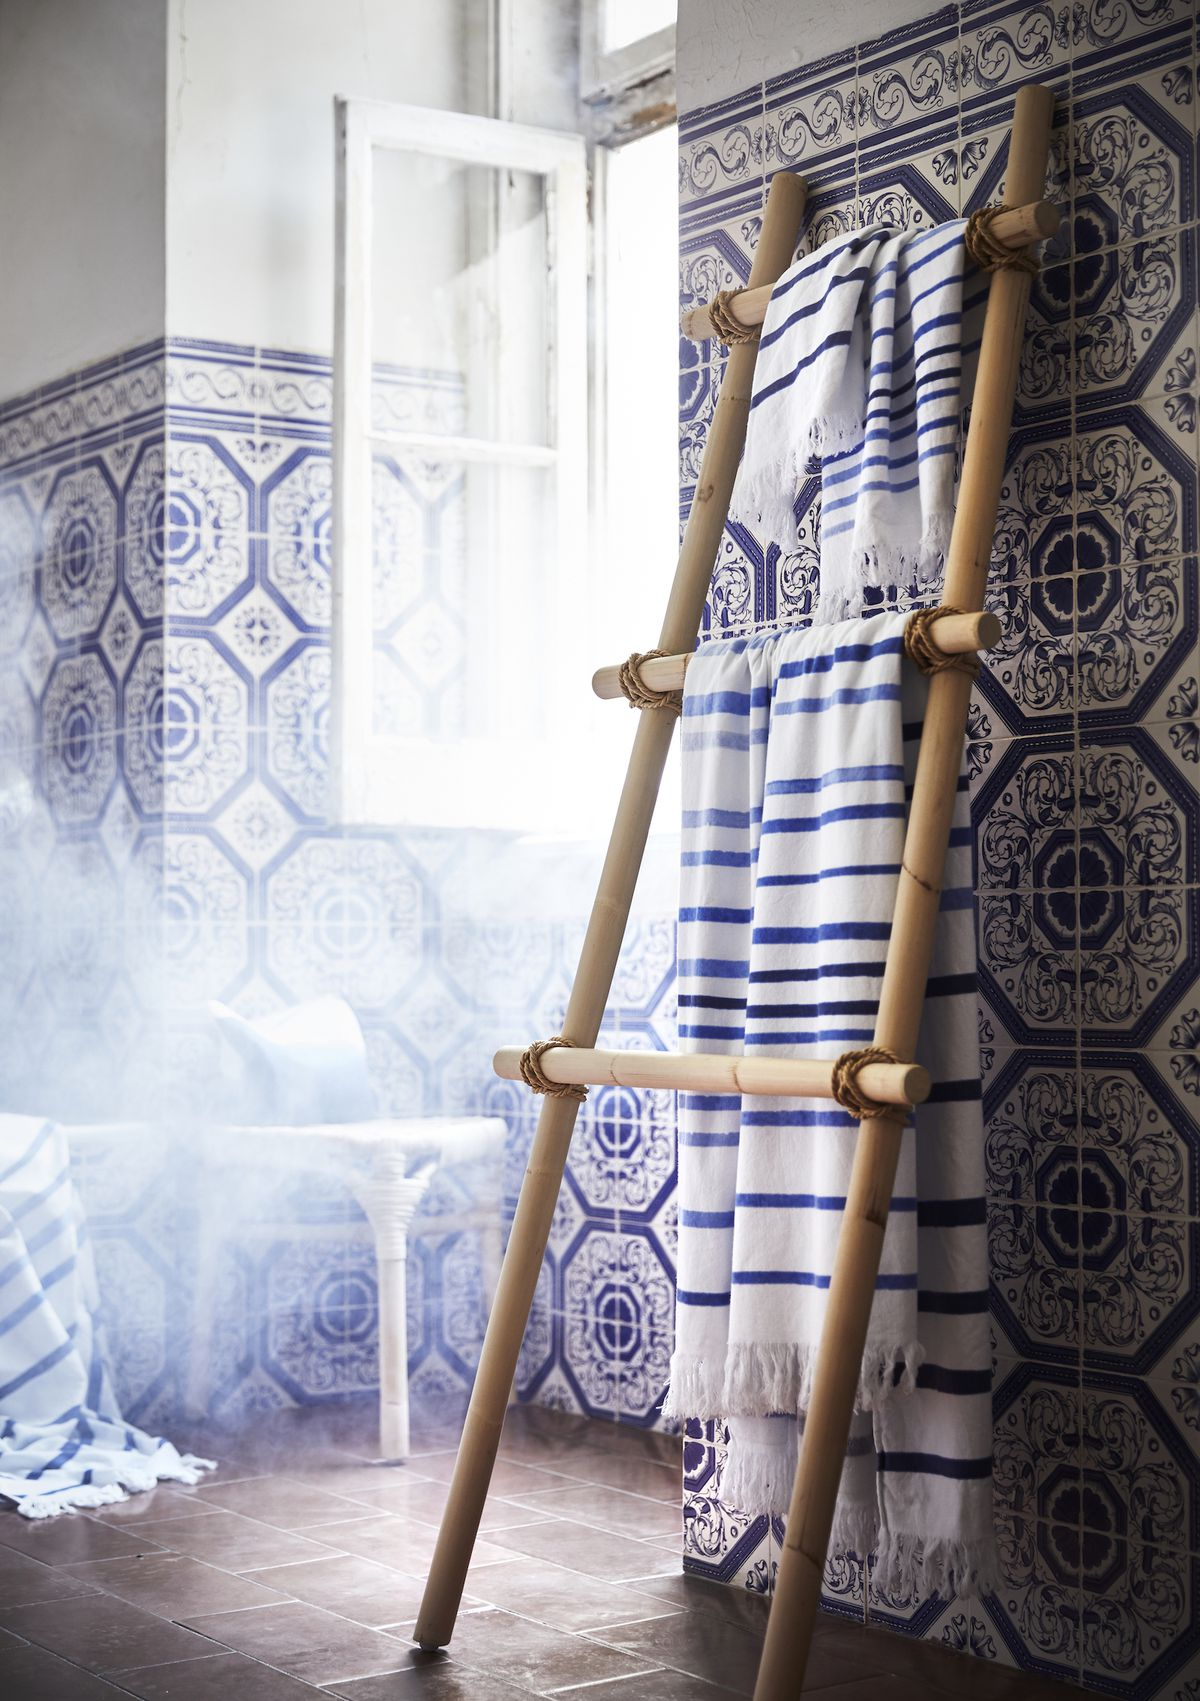 Blue and white throw on wooden ladder